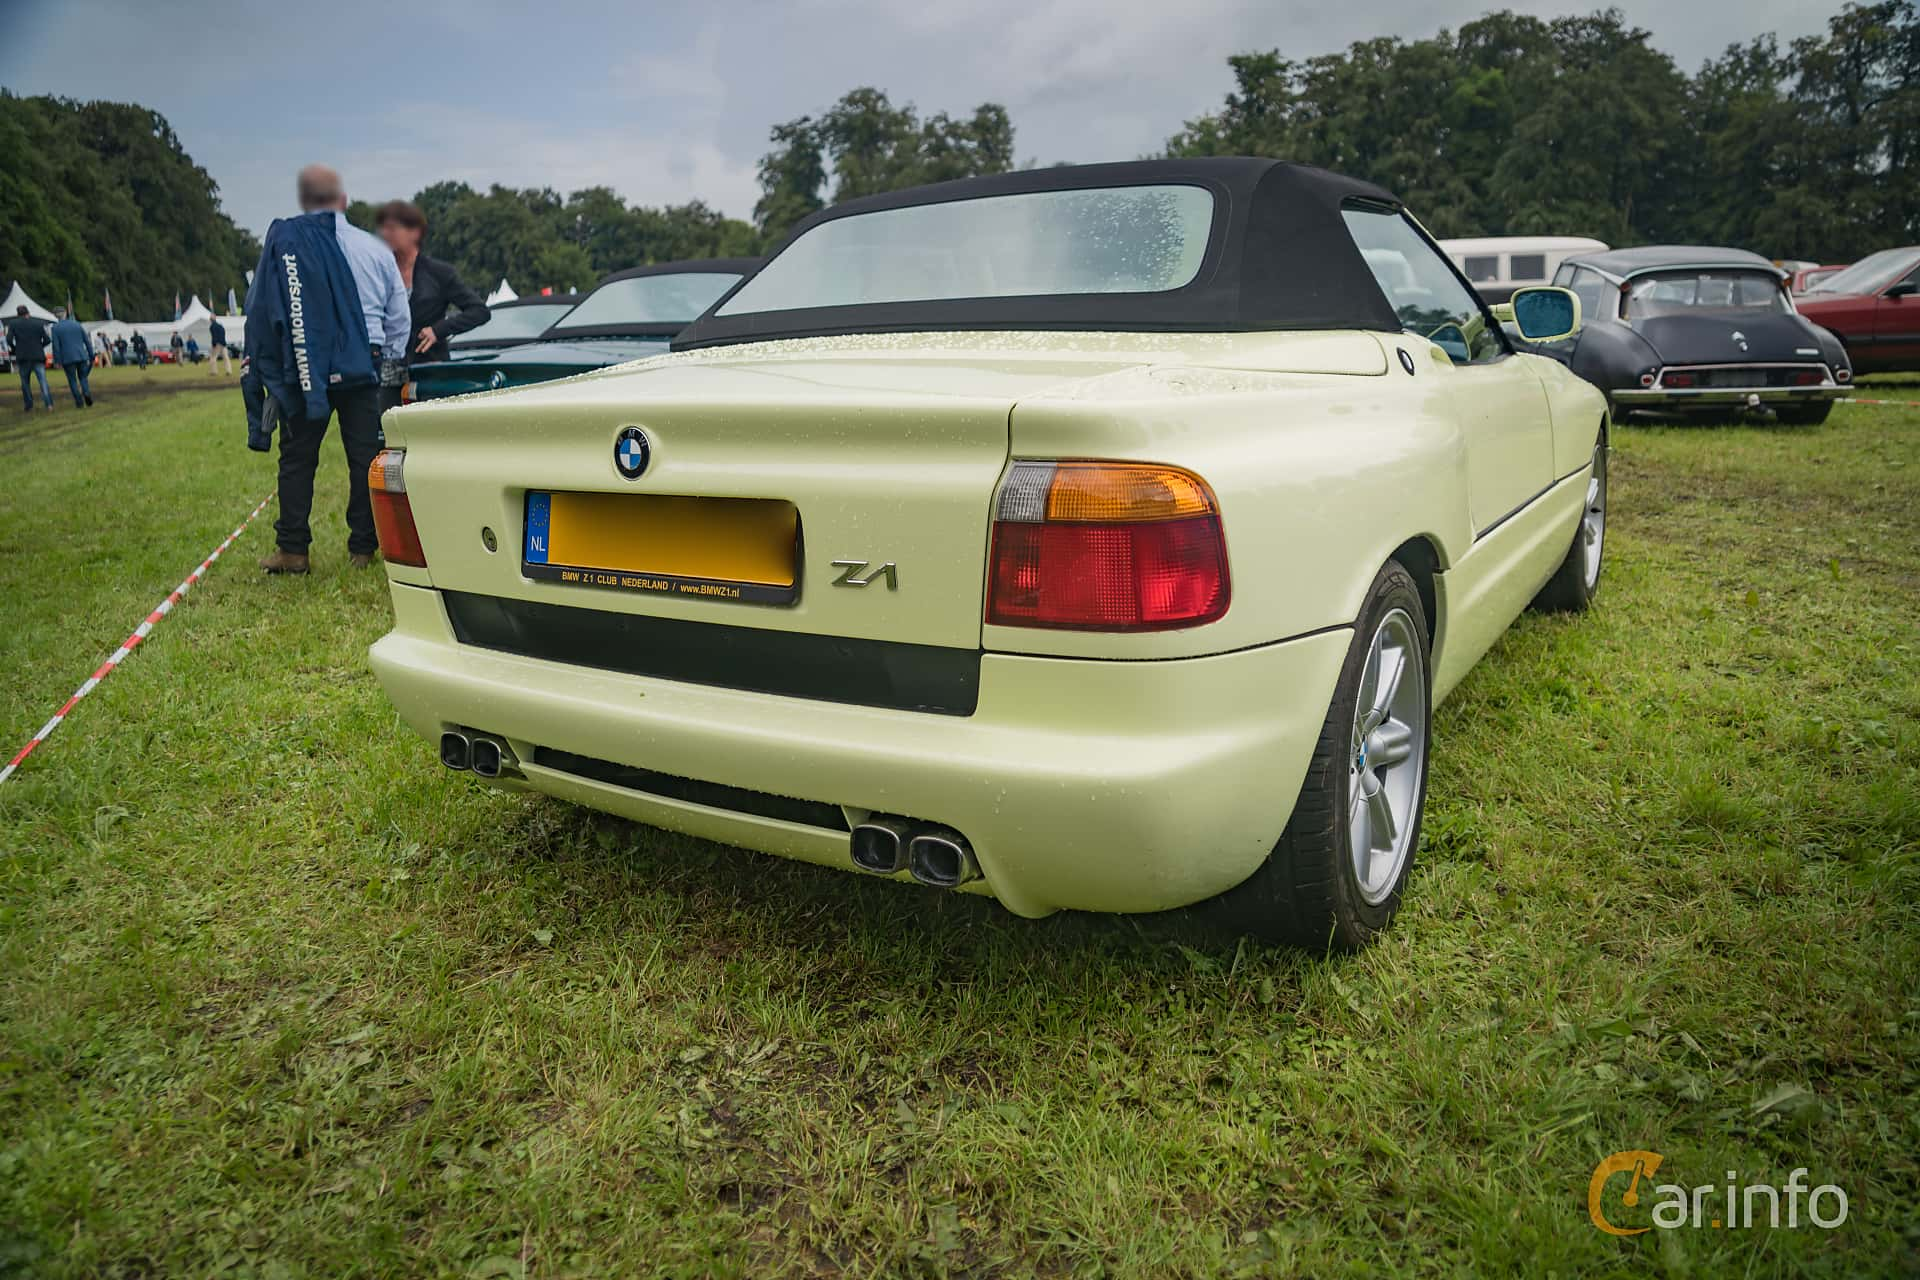 User Images Of Bmw Z1 E30